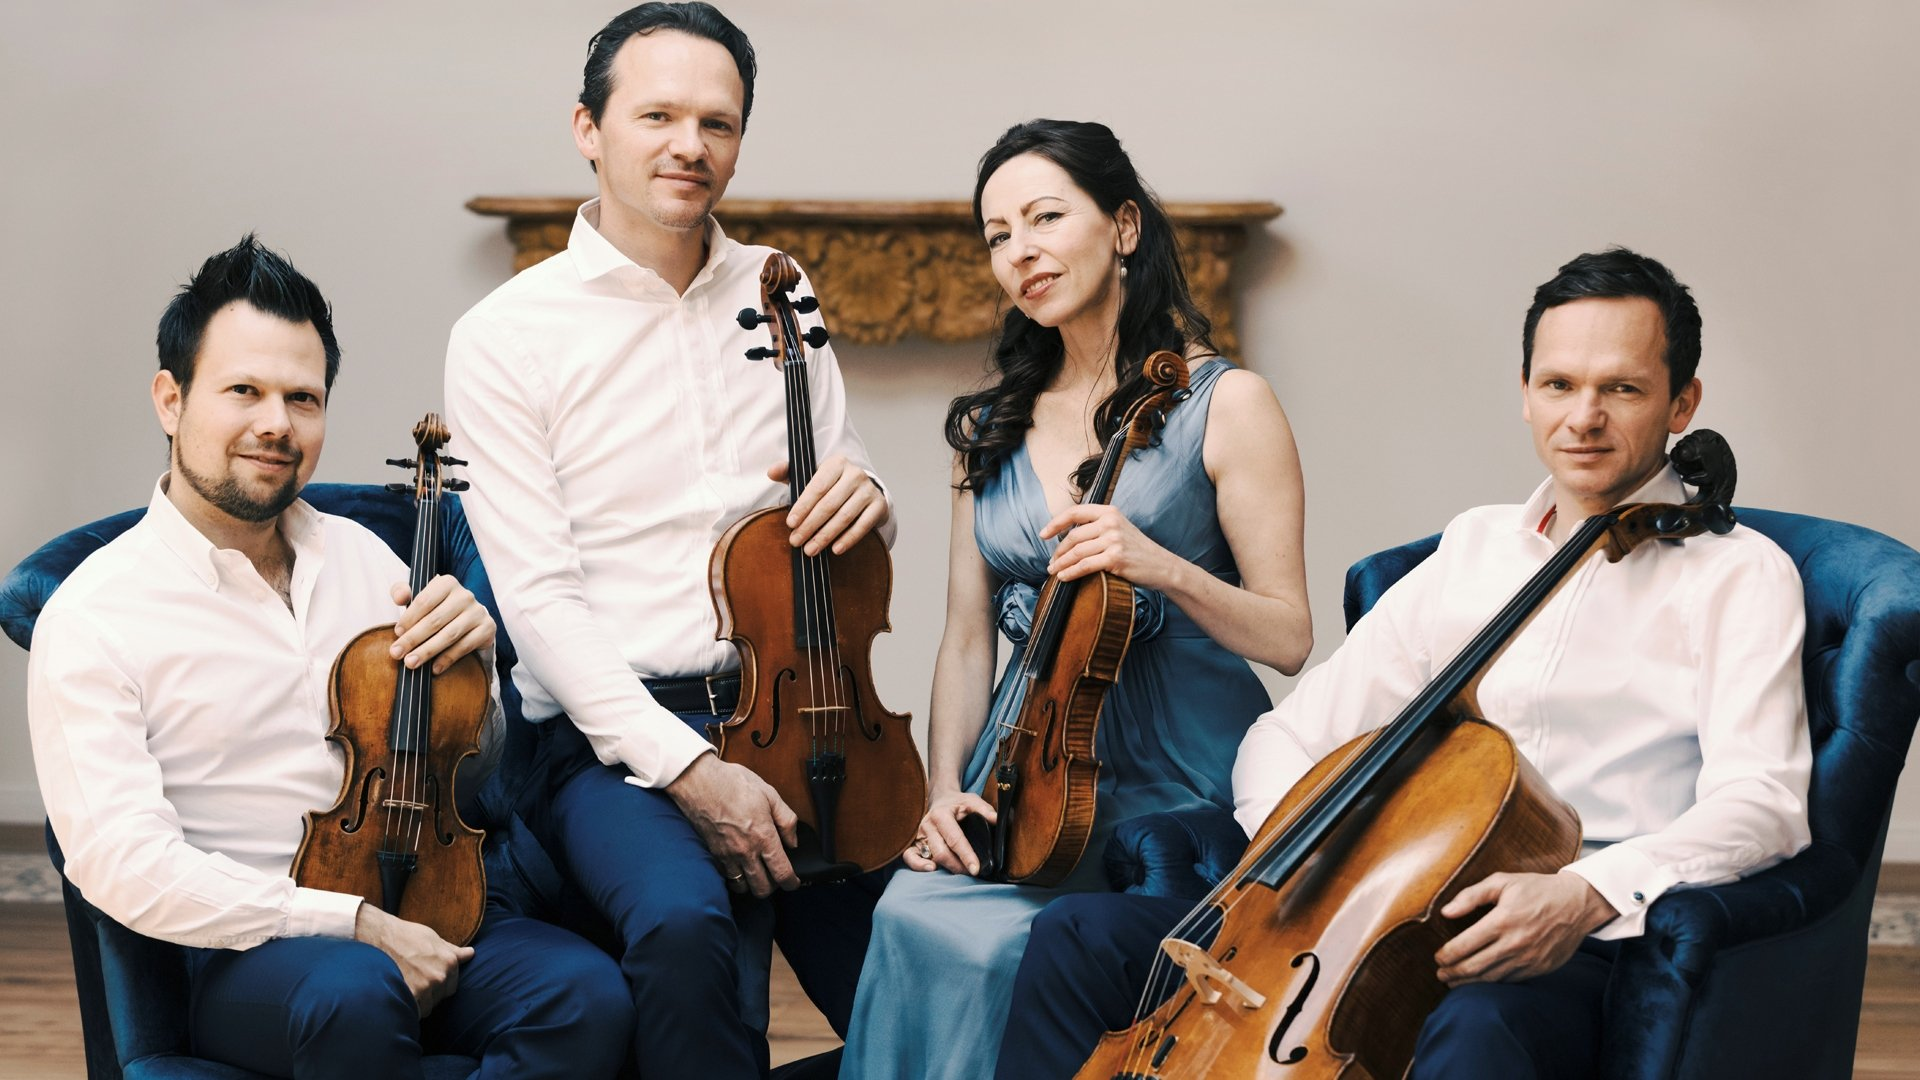 """CasalQuartett will accompany the famous Turkish pianist Fazıl Say in the """"Voice Nature"""" concert as part of the Istanbul Music Festival.  (Courtesy of IKSV)"""